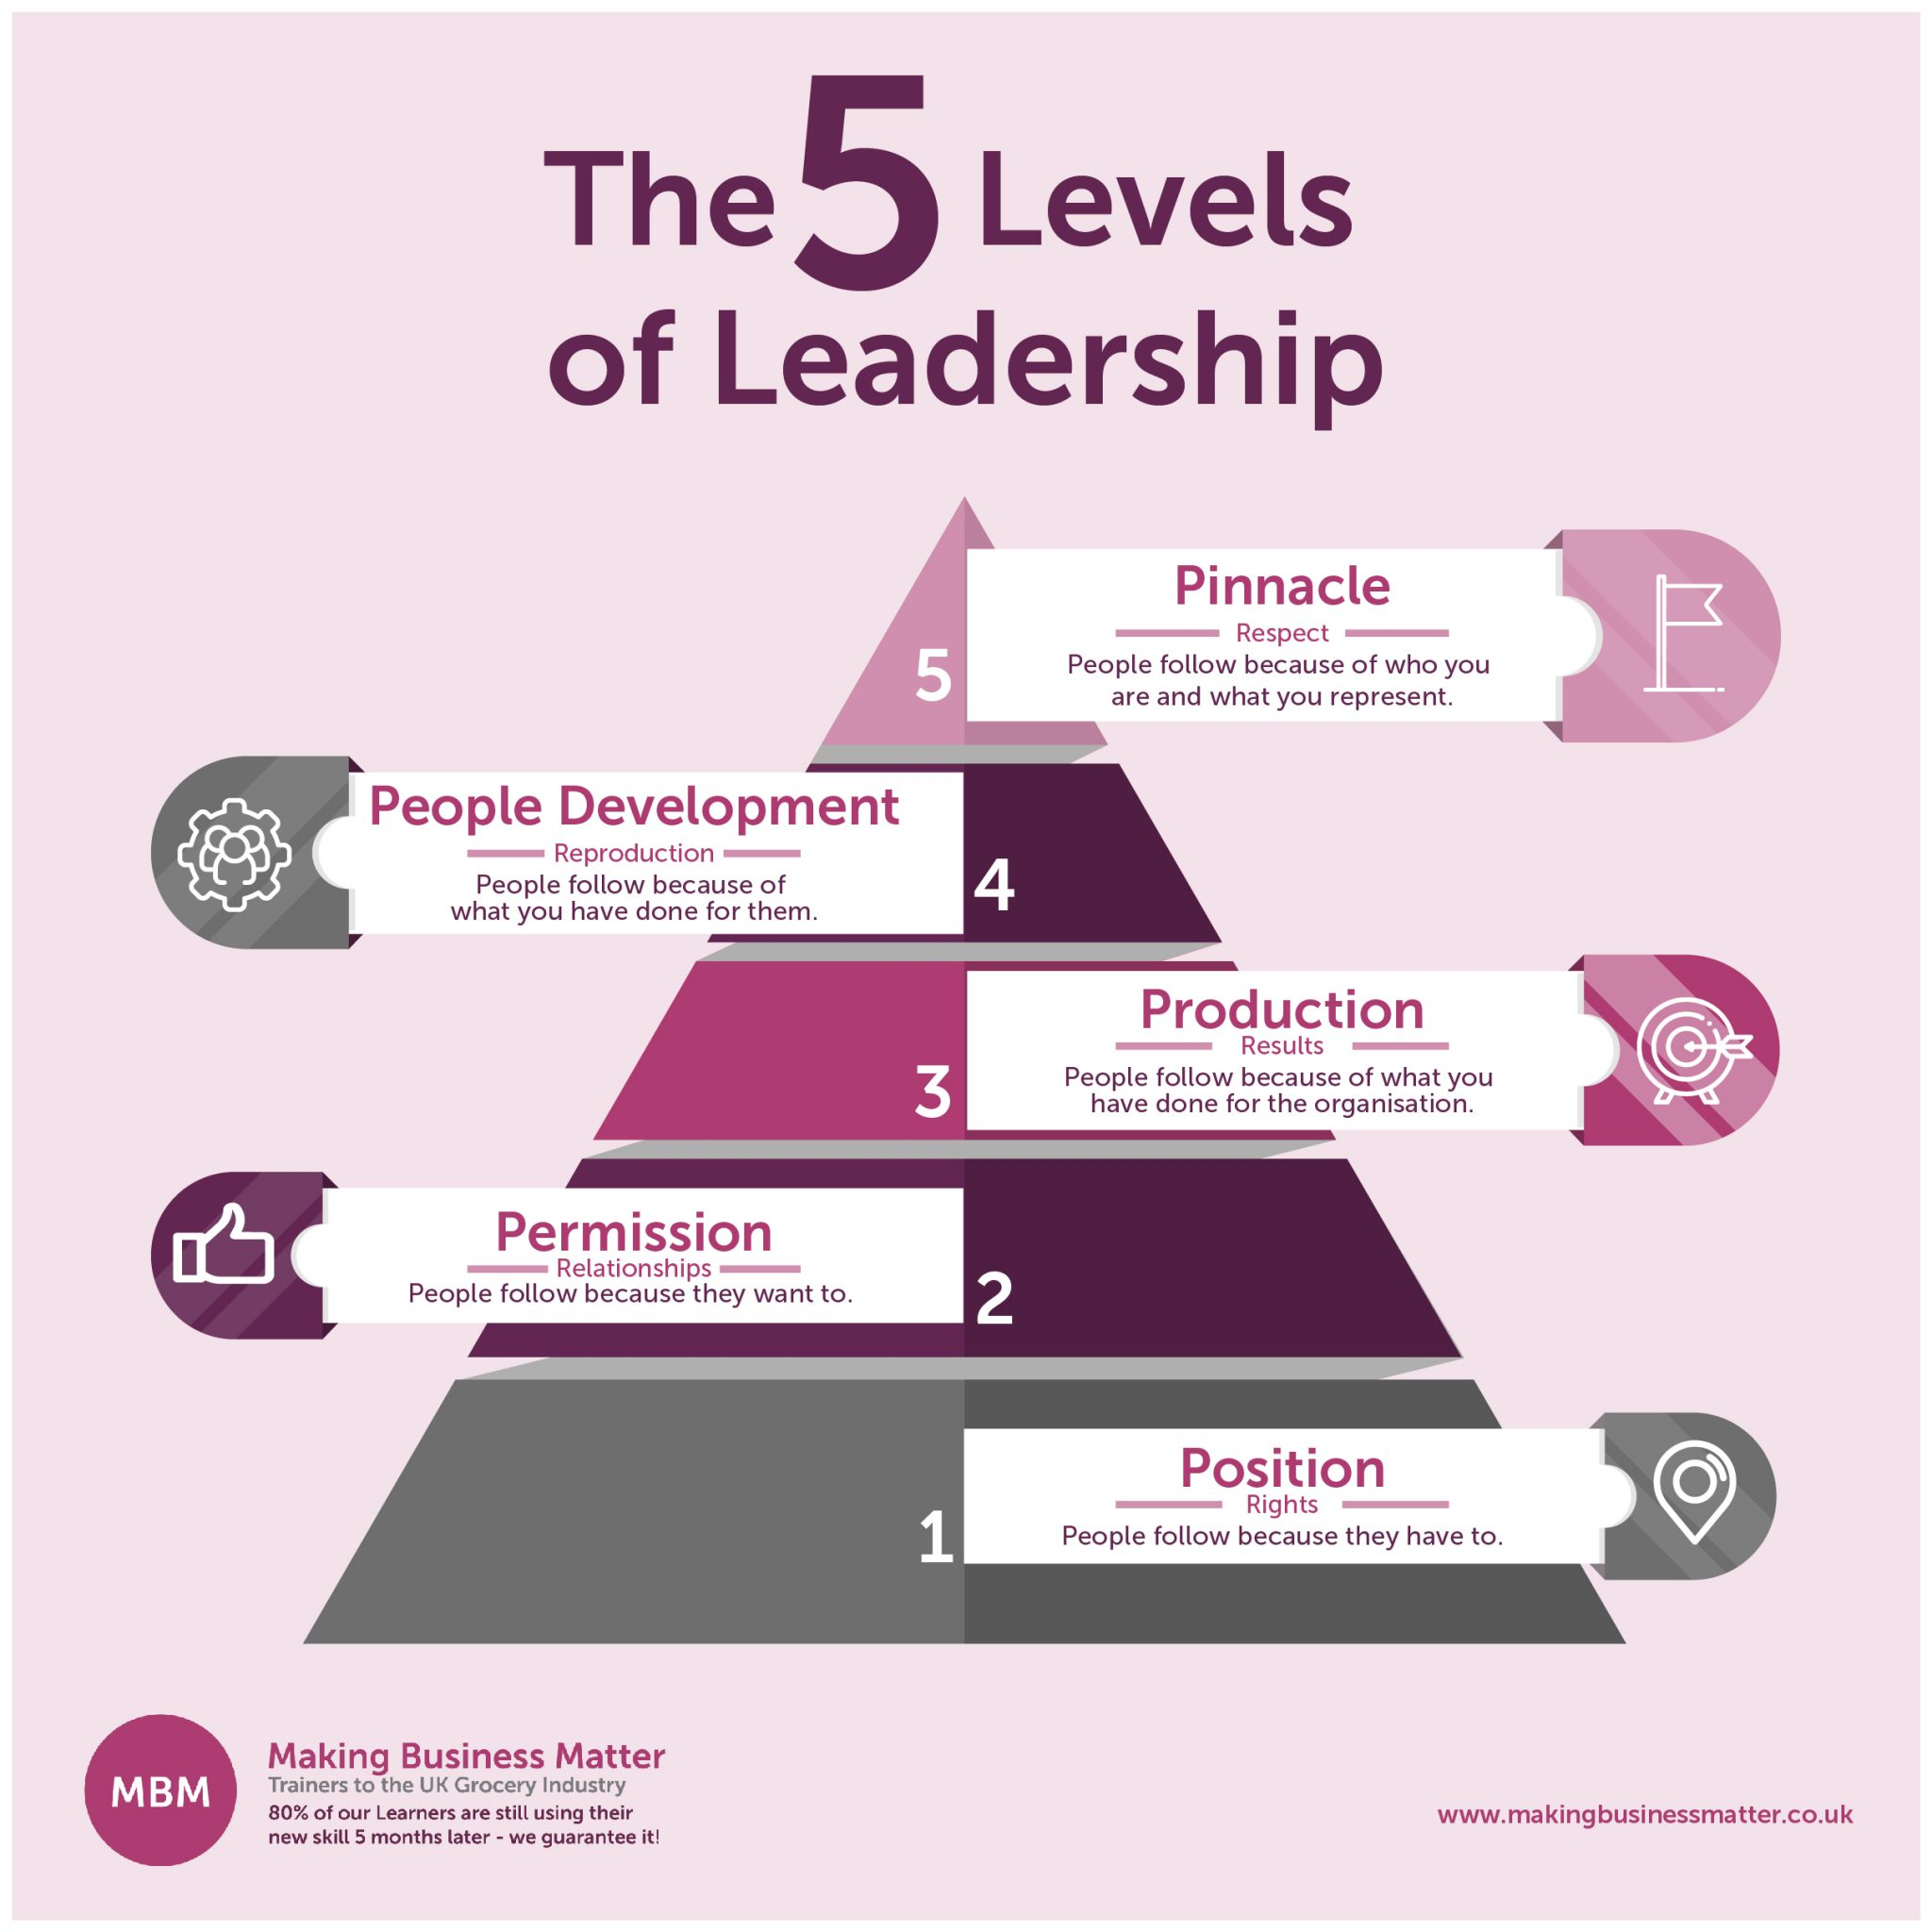 The Five Levels of Leadership: Pinnacle, People Development, Production, Permission, and position